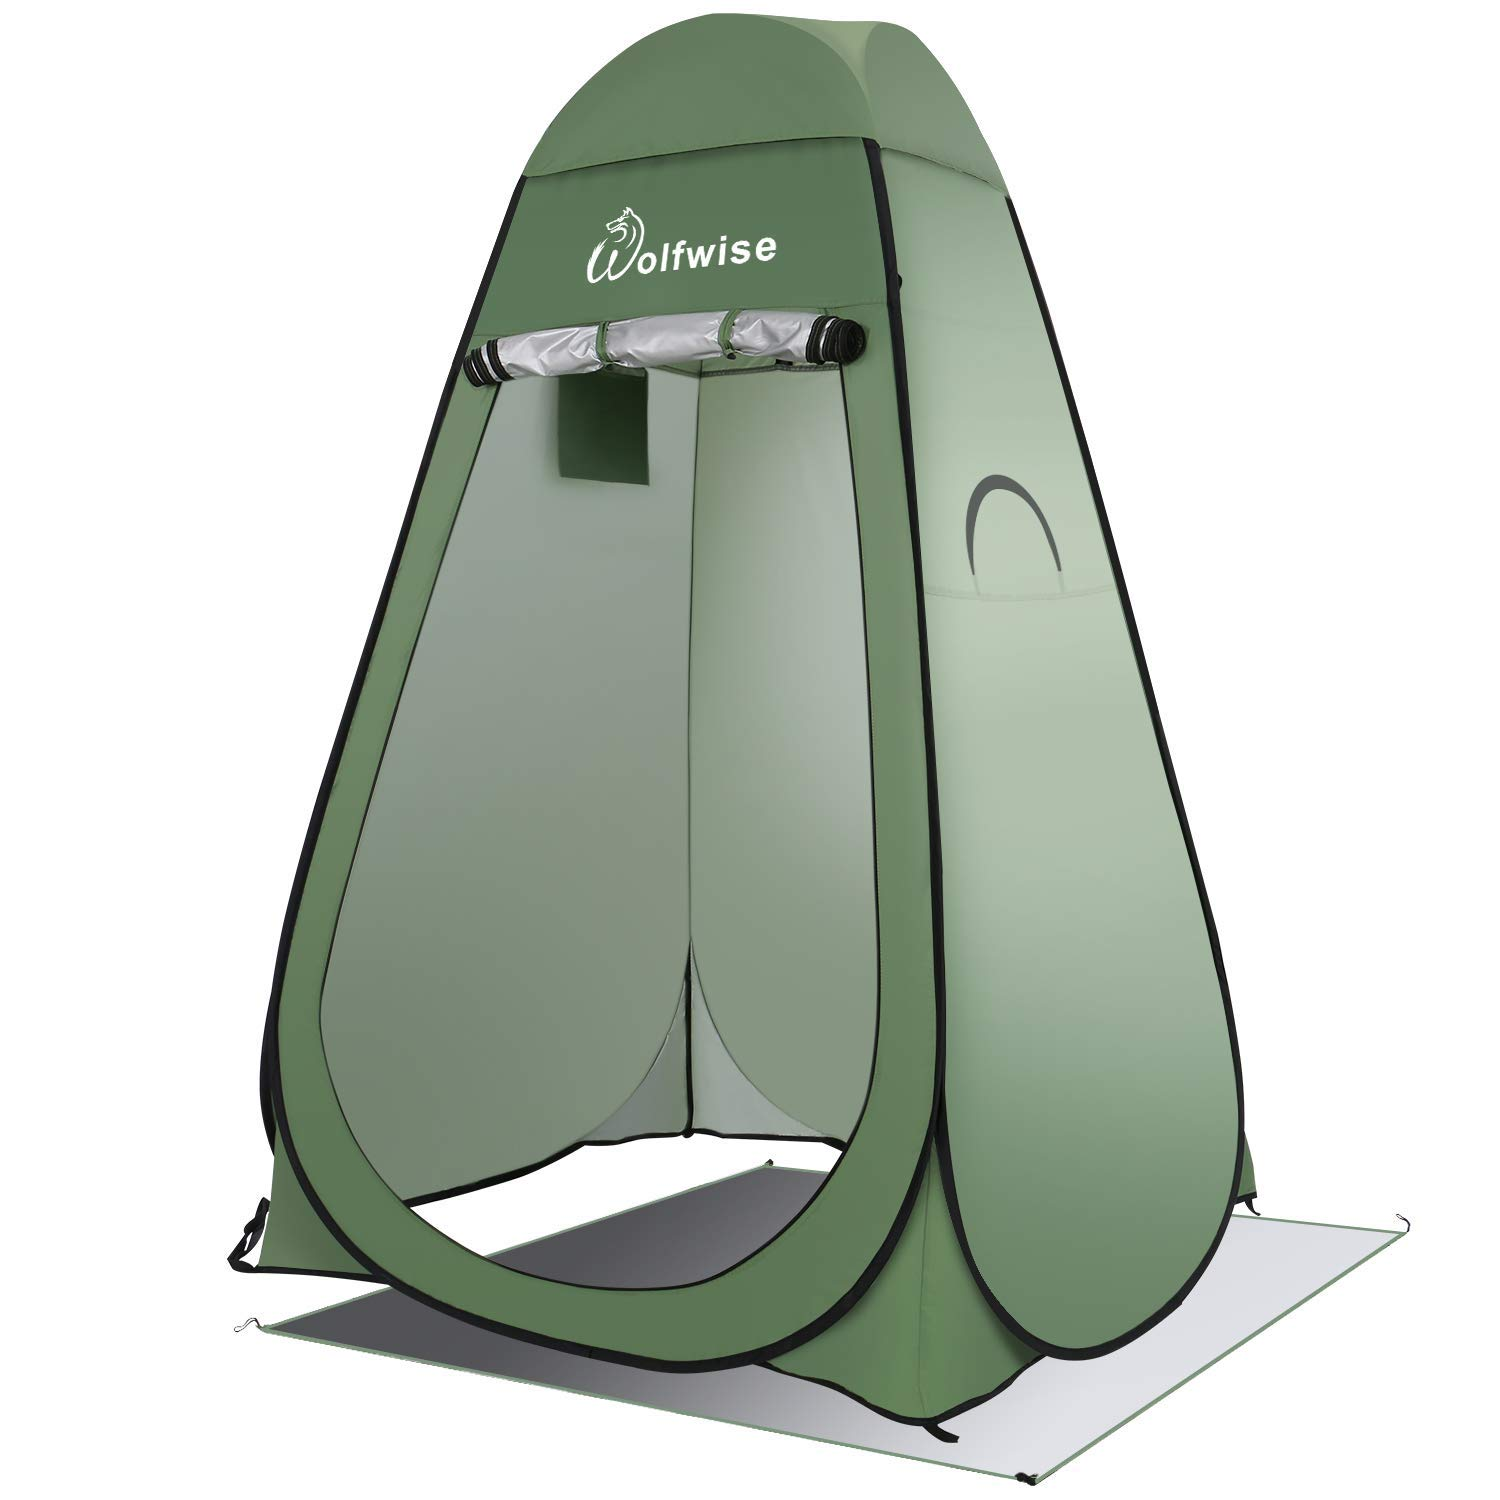 WolfWise Easy Pop Up Privacy Shower Tent Portable Outdoor Sun Shelter Camp Toilet Changing Dressing Room (Renewed) by WolfWise